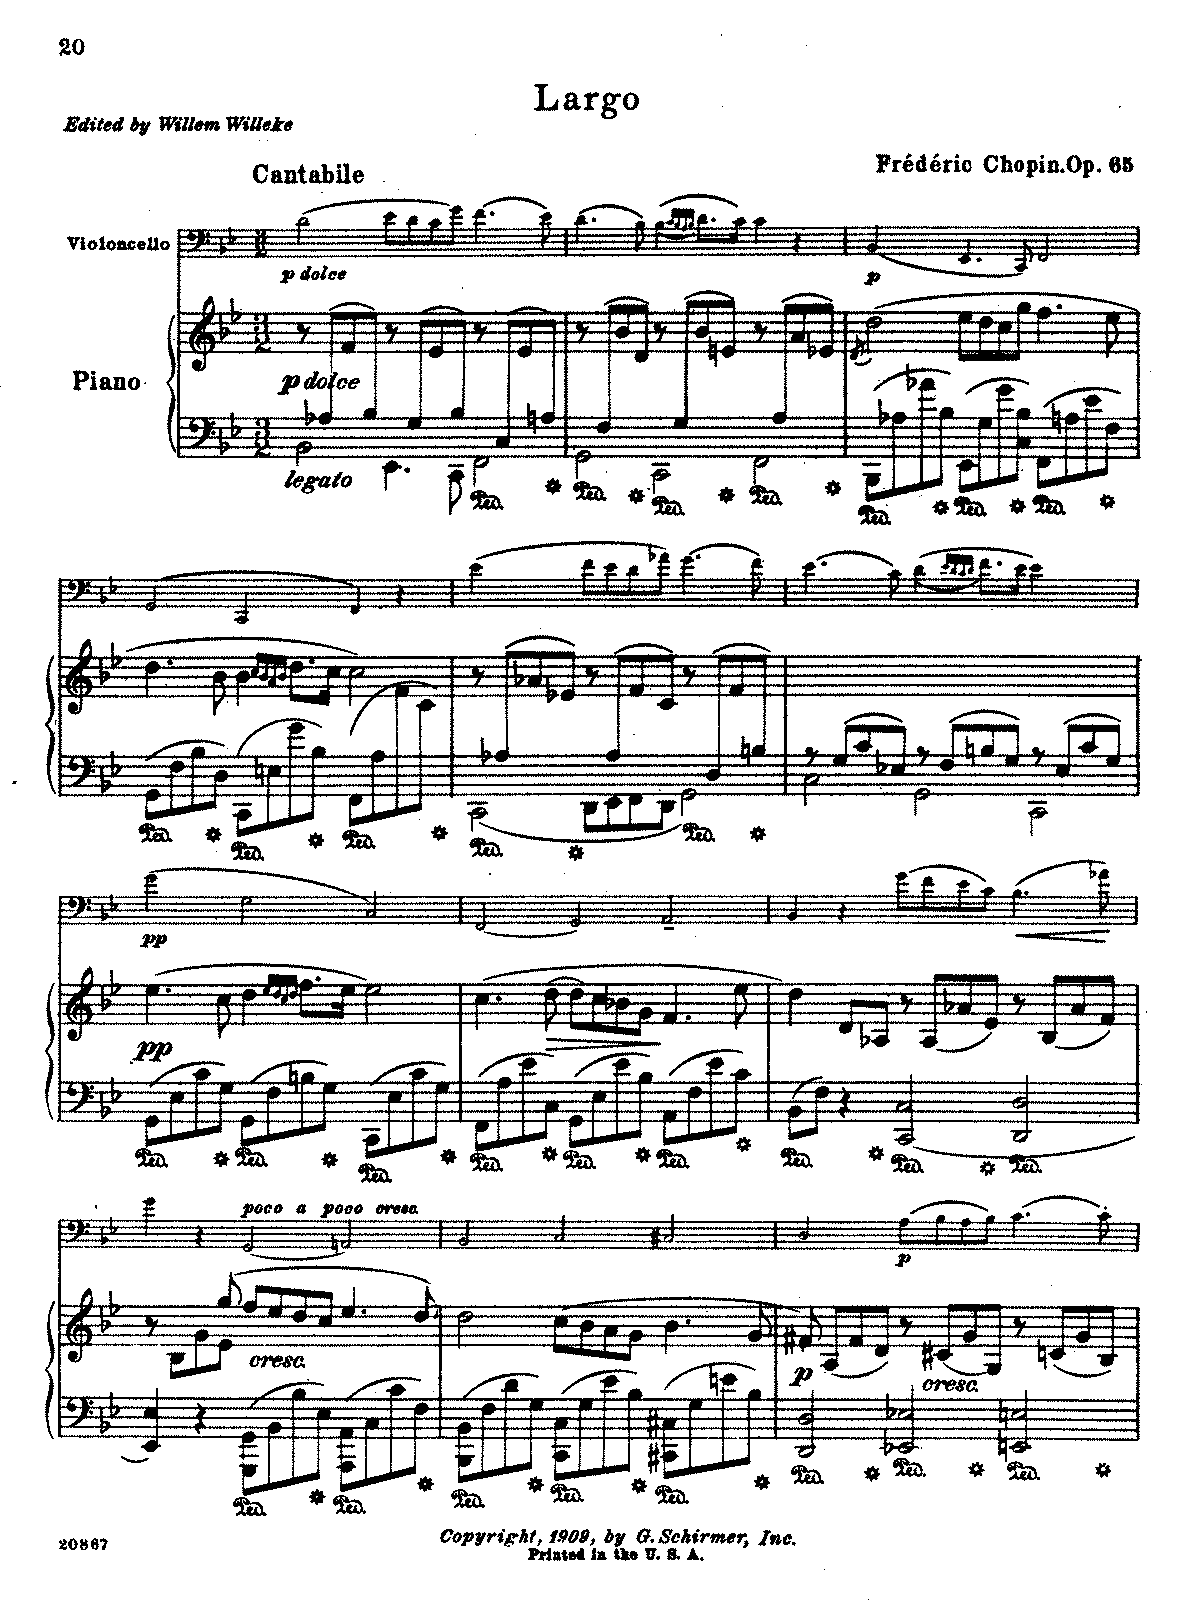 PMLP05808-Chopin - Largo Op65 (Willeke) for cello and piano.pdf